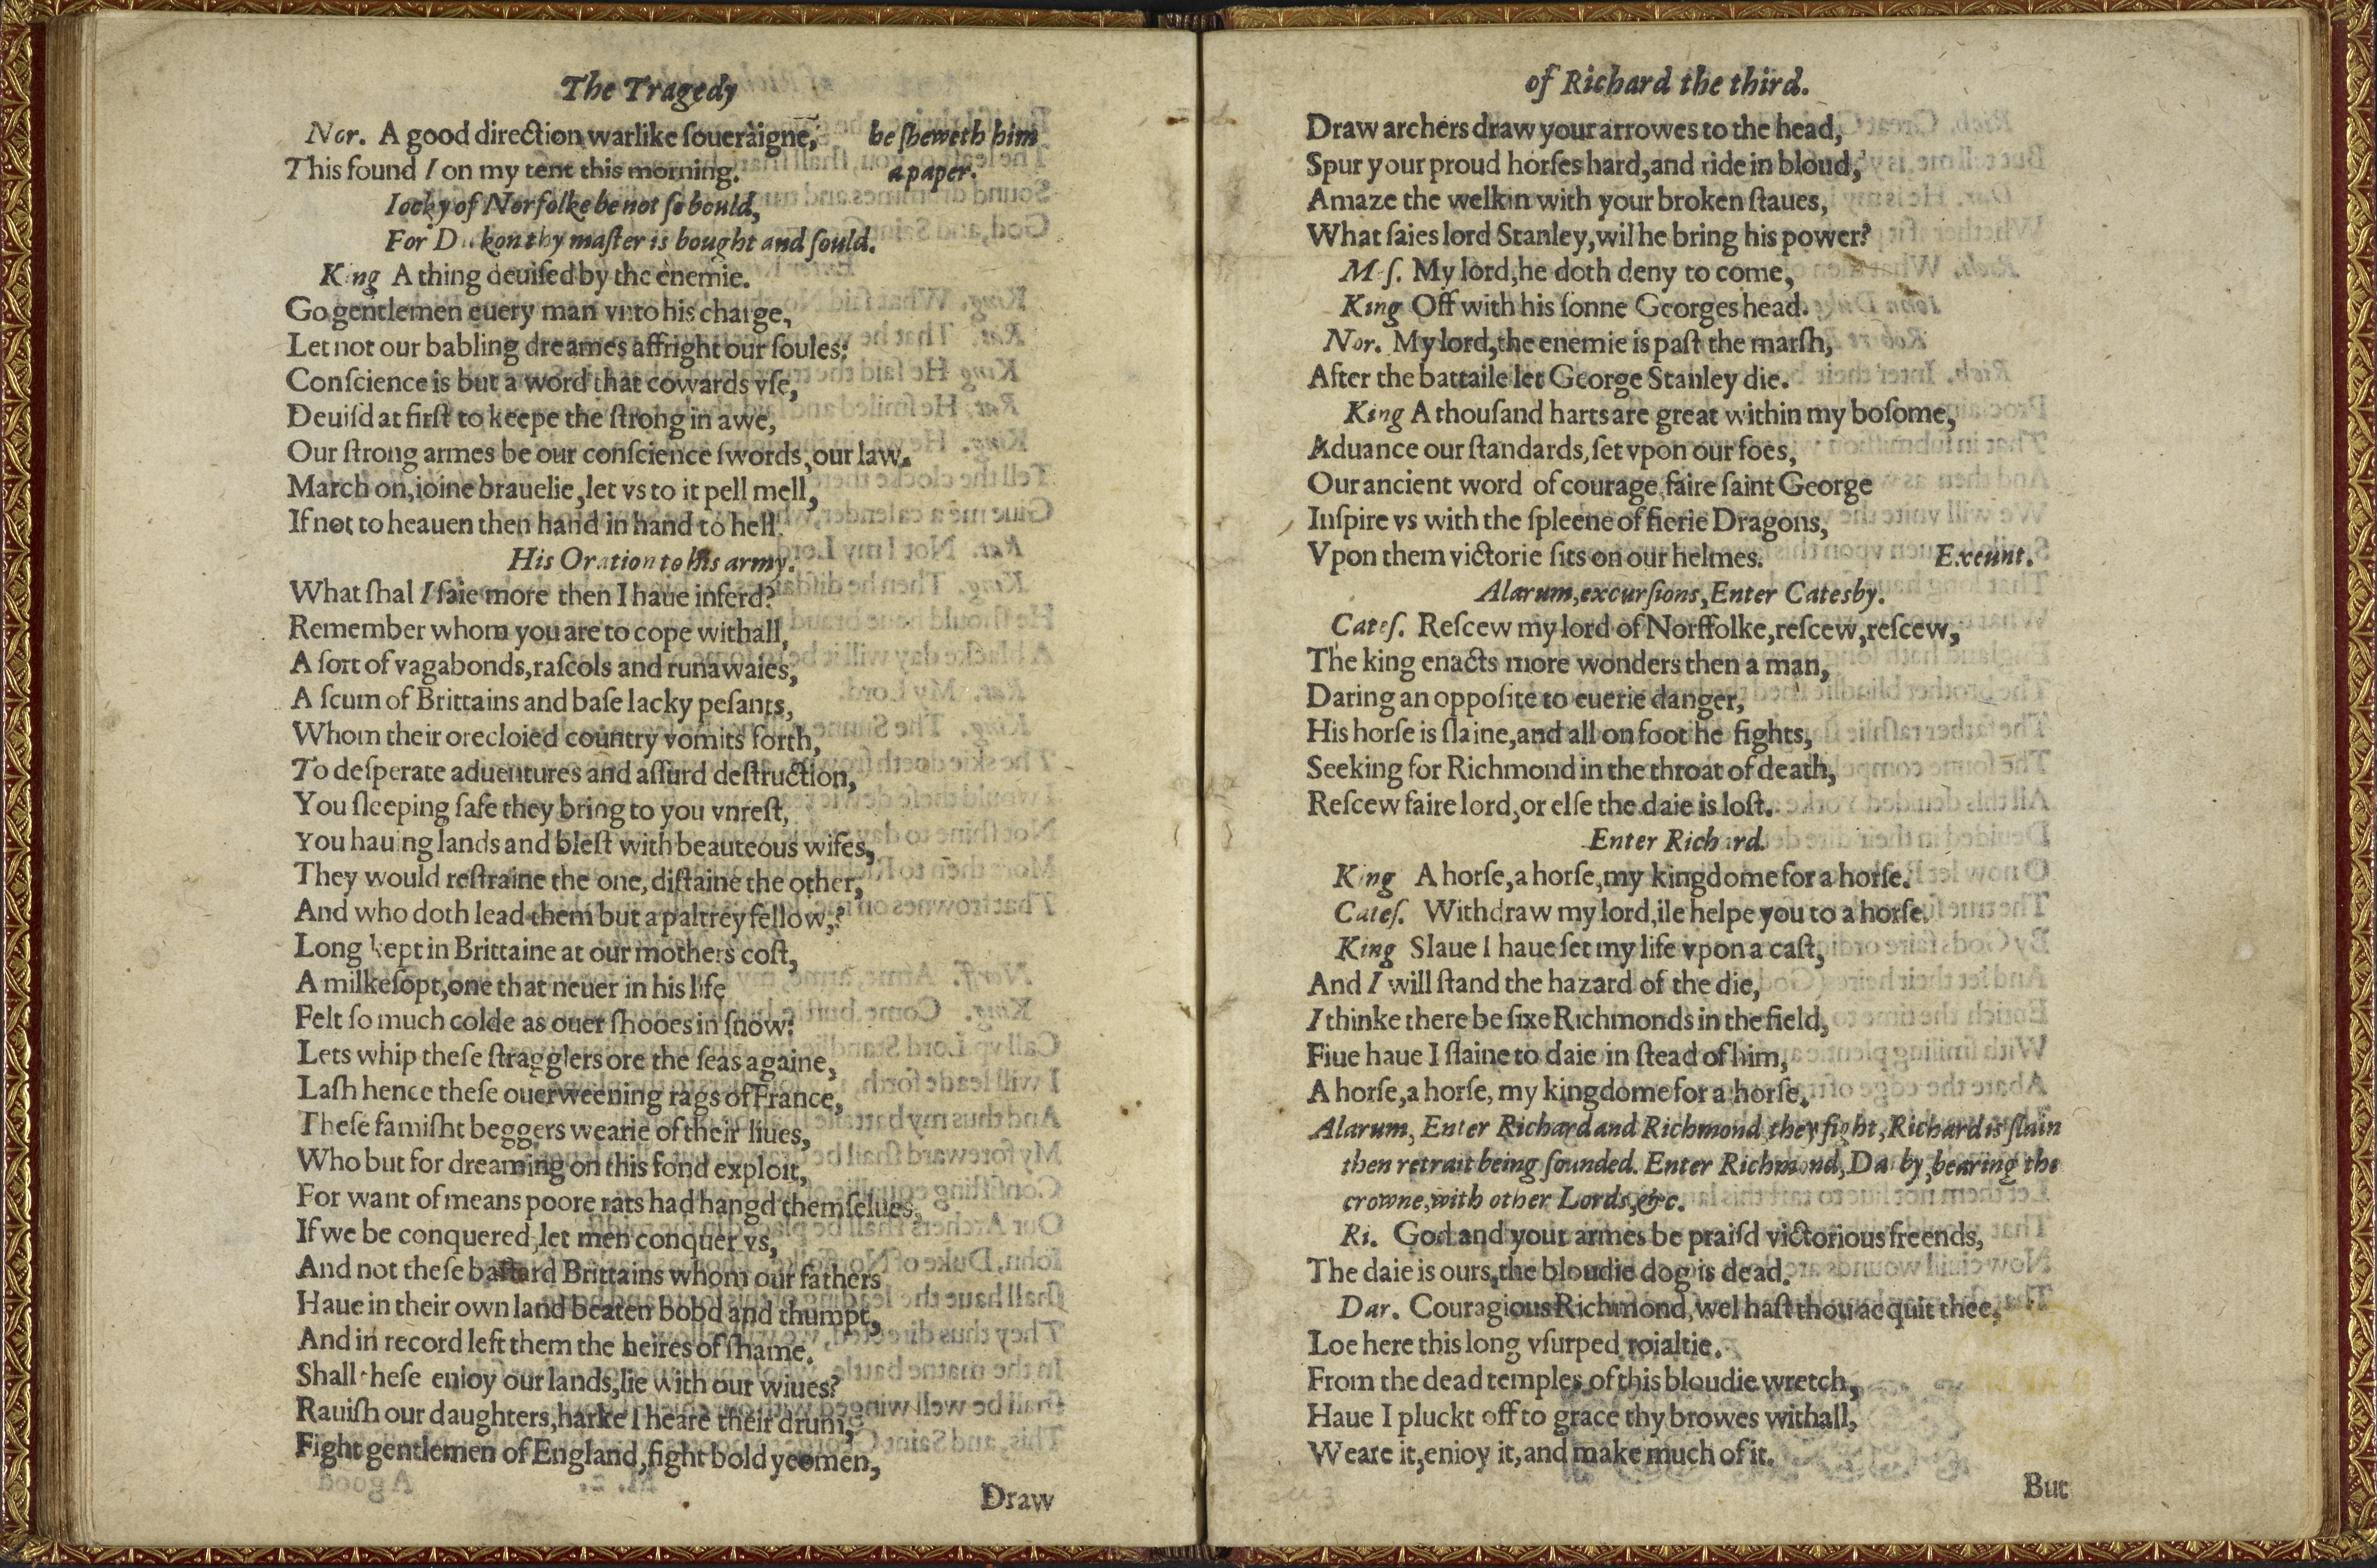 an analysis of the soliloquy of hamlet in a play by william shakespeare Hamlet's to be, or not to be soliloquy and summary  pages of william  shakespeare's first folio at the bodlean library, oxford  whether to execute the  ghost's revenge or to endure his sufferings at this point in the play.